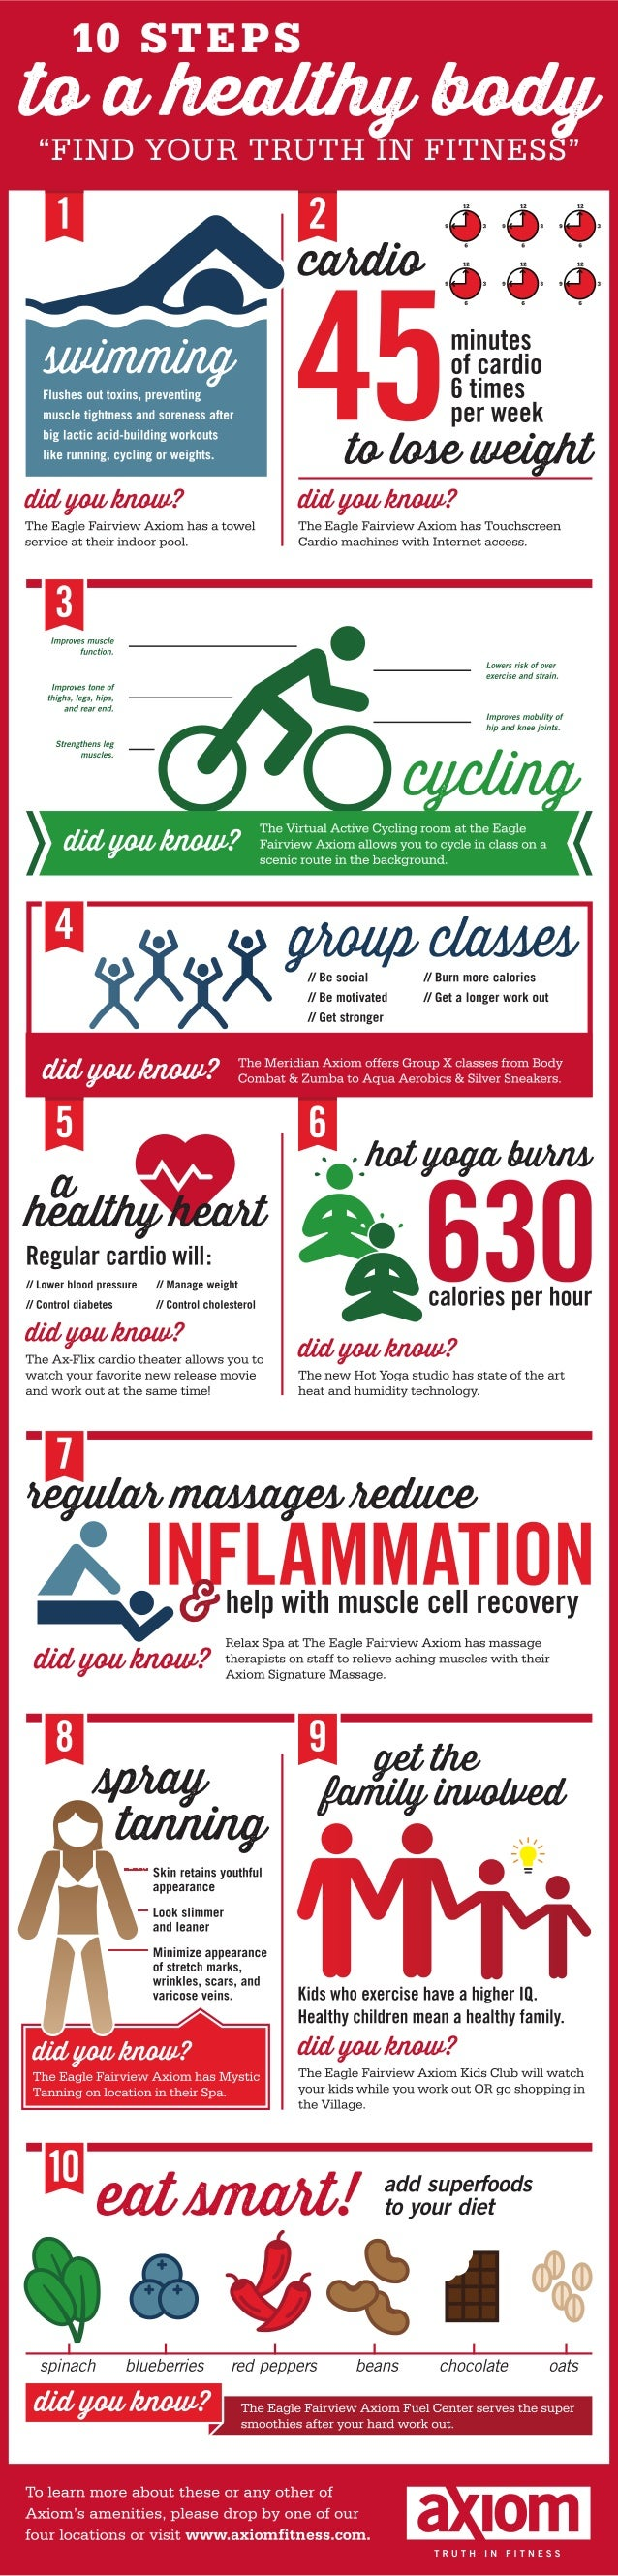 10 Steps to a Healthy Body